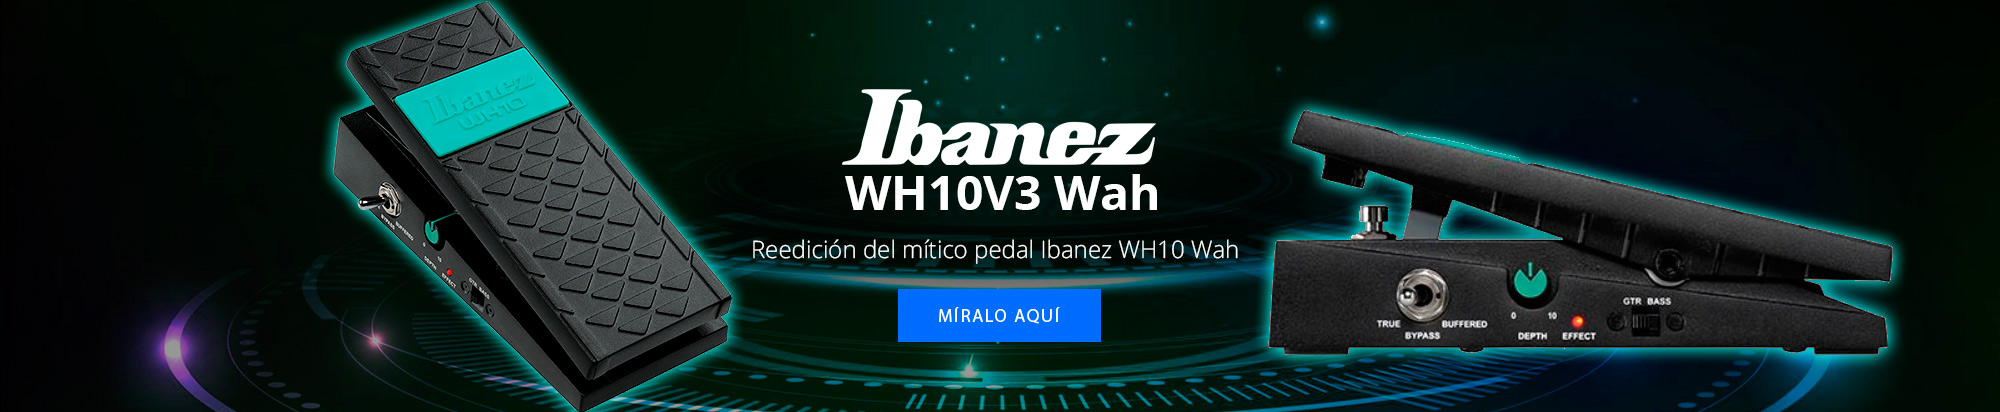 Ibanez WH10V3 Wah